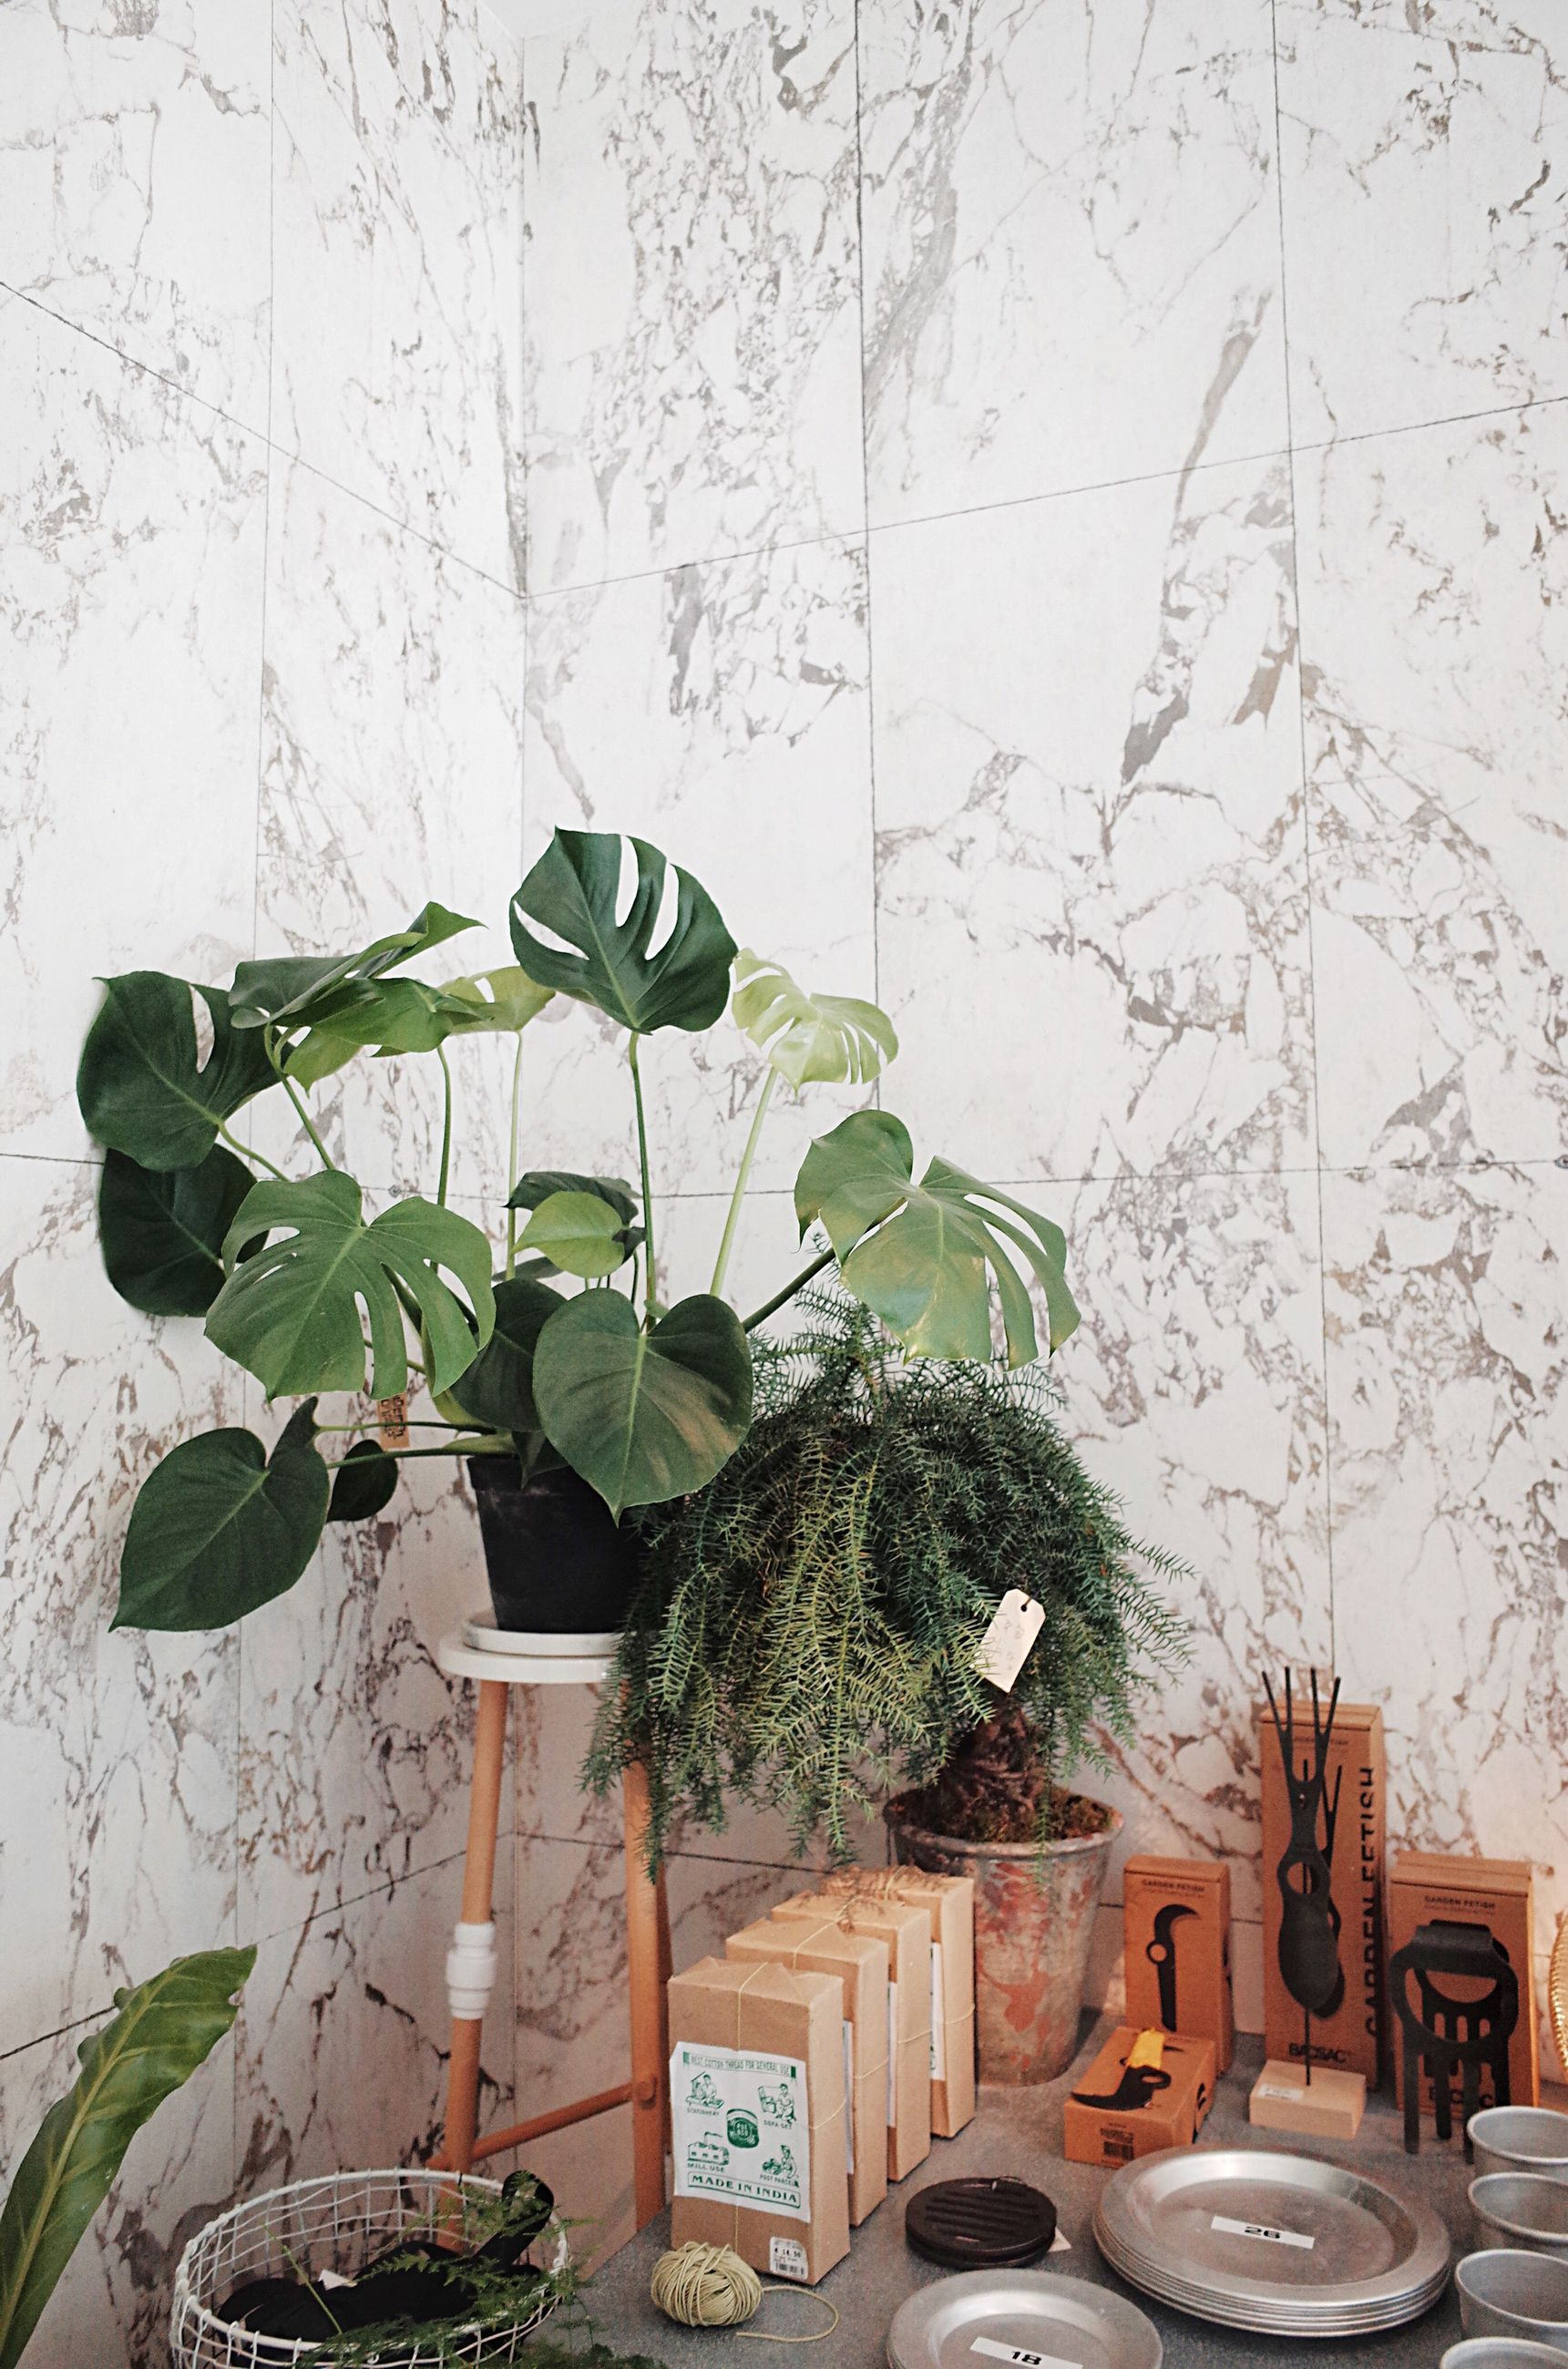 leaf, indoors, wall - building feature, potted plant, architecture, table, built structure, flower, vase, flower pot, houseplant, plant, flower arrangement, pot plant, bouquet, day, no people, house plant, fragility, freshness